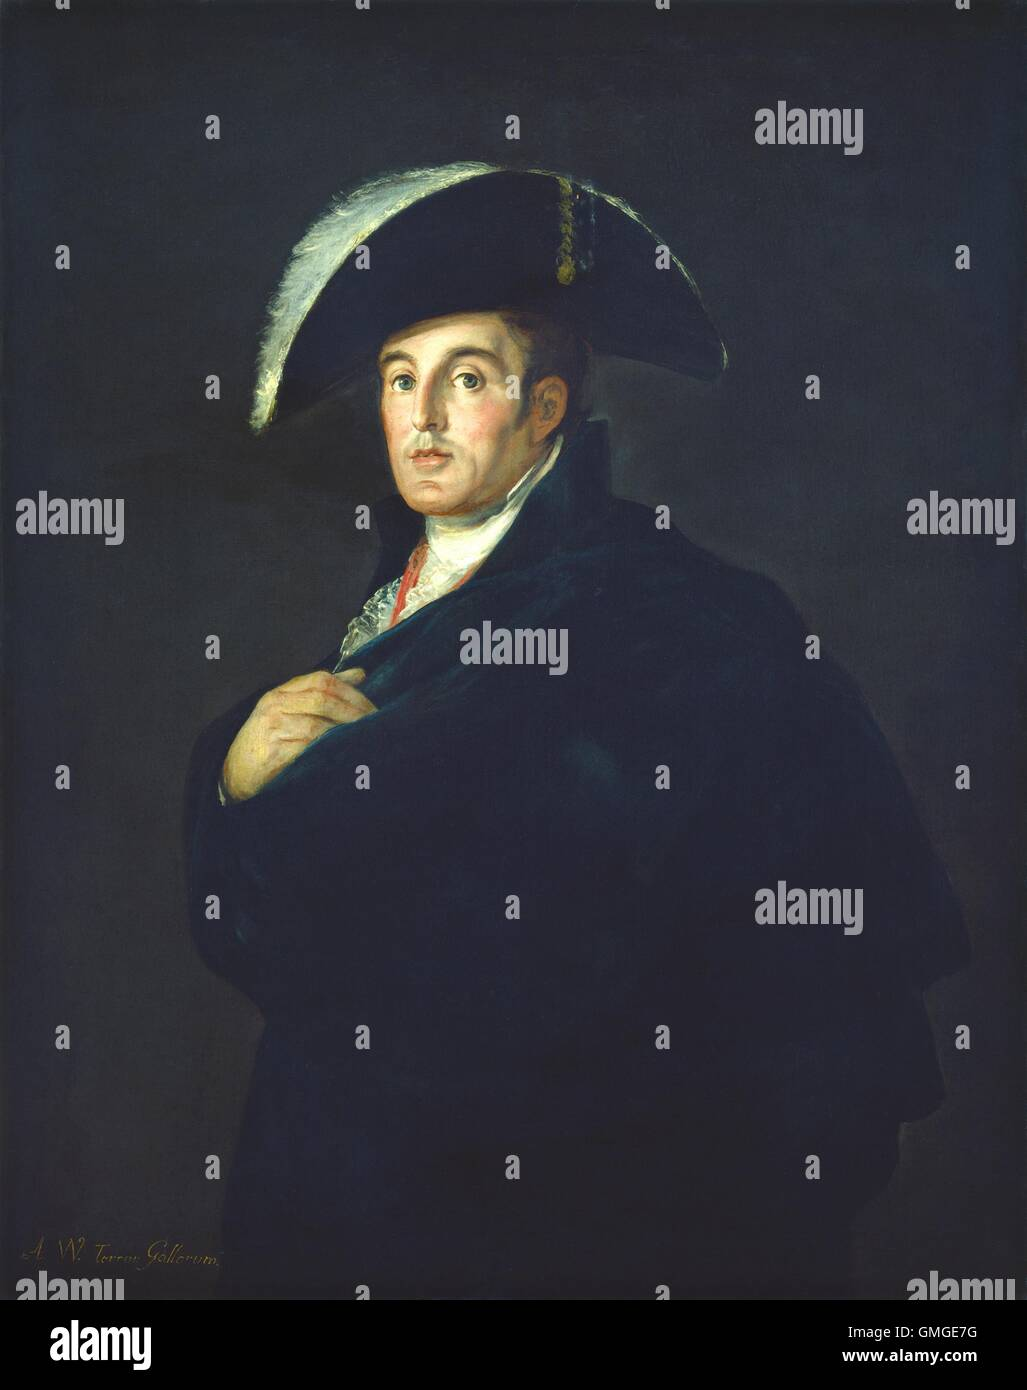 The Duke of Wellington, by Francisco de Goya studio, 1812, Spanish painting, oil on canvas. When this portrait was - Stock Image